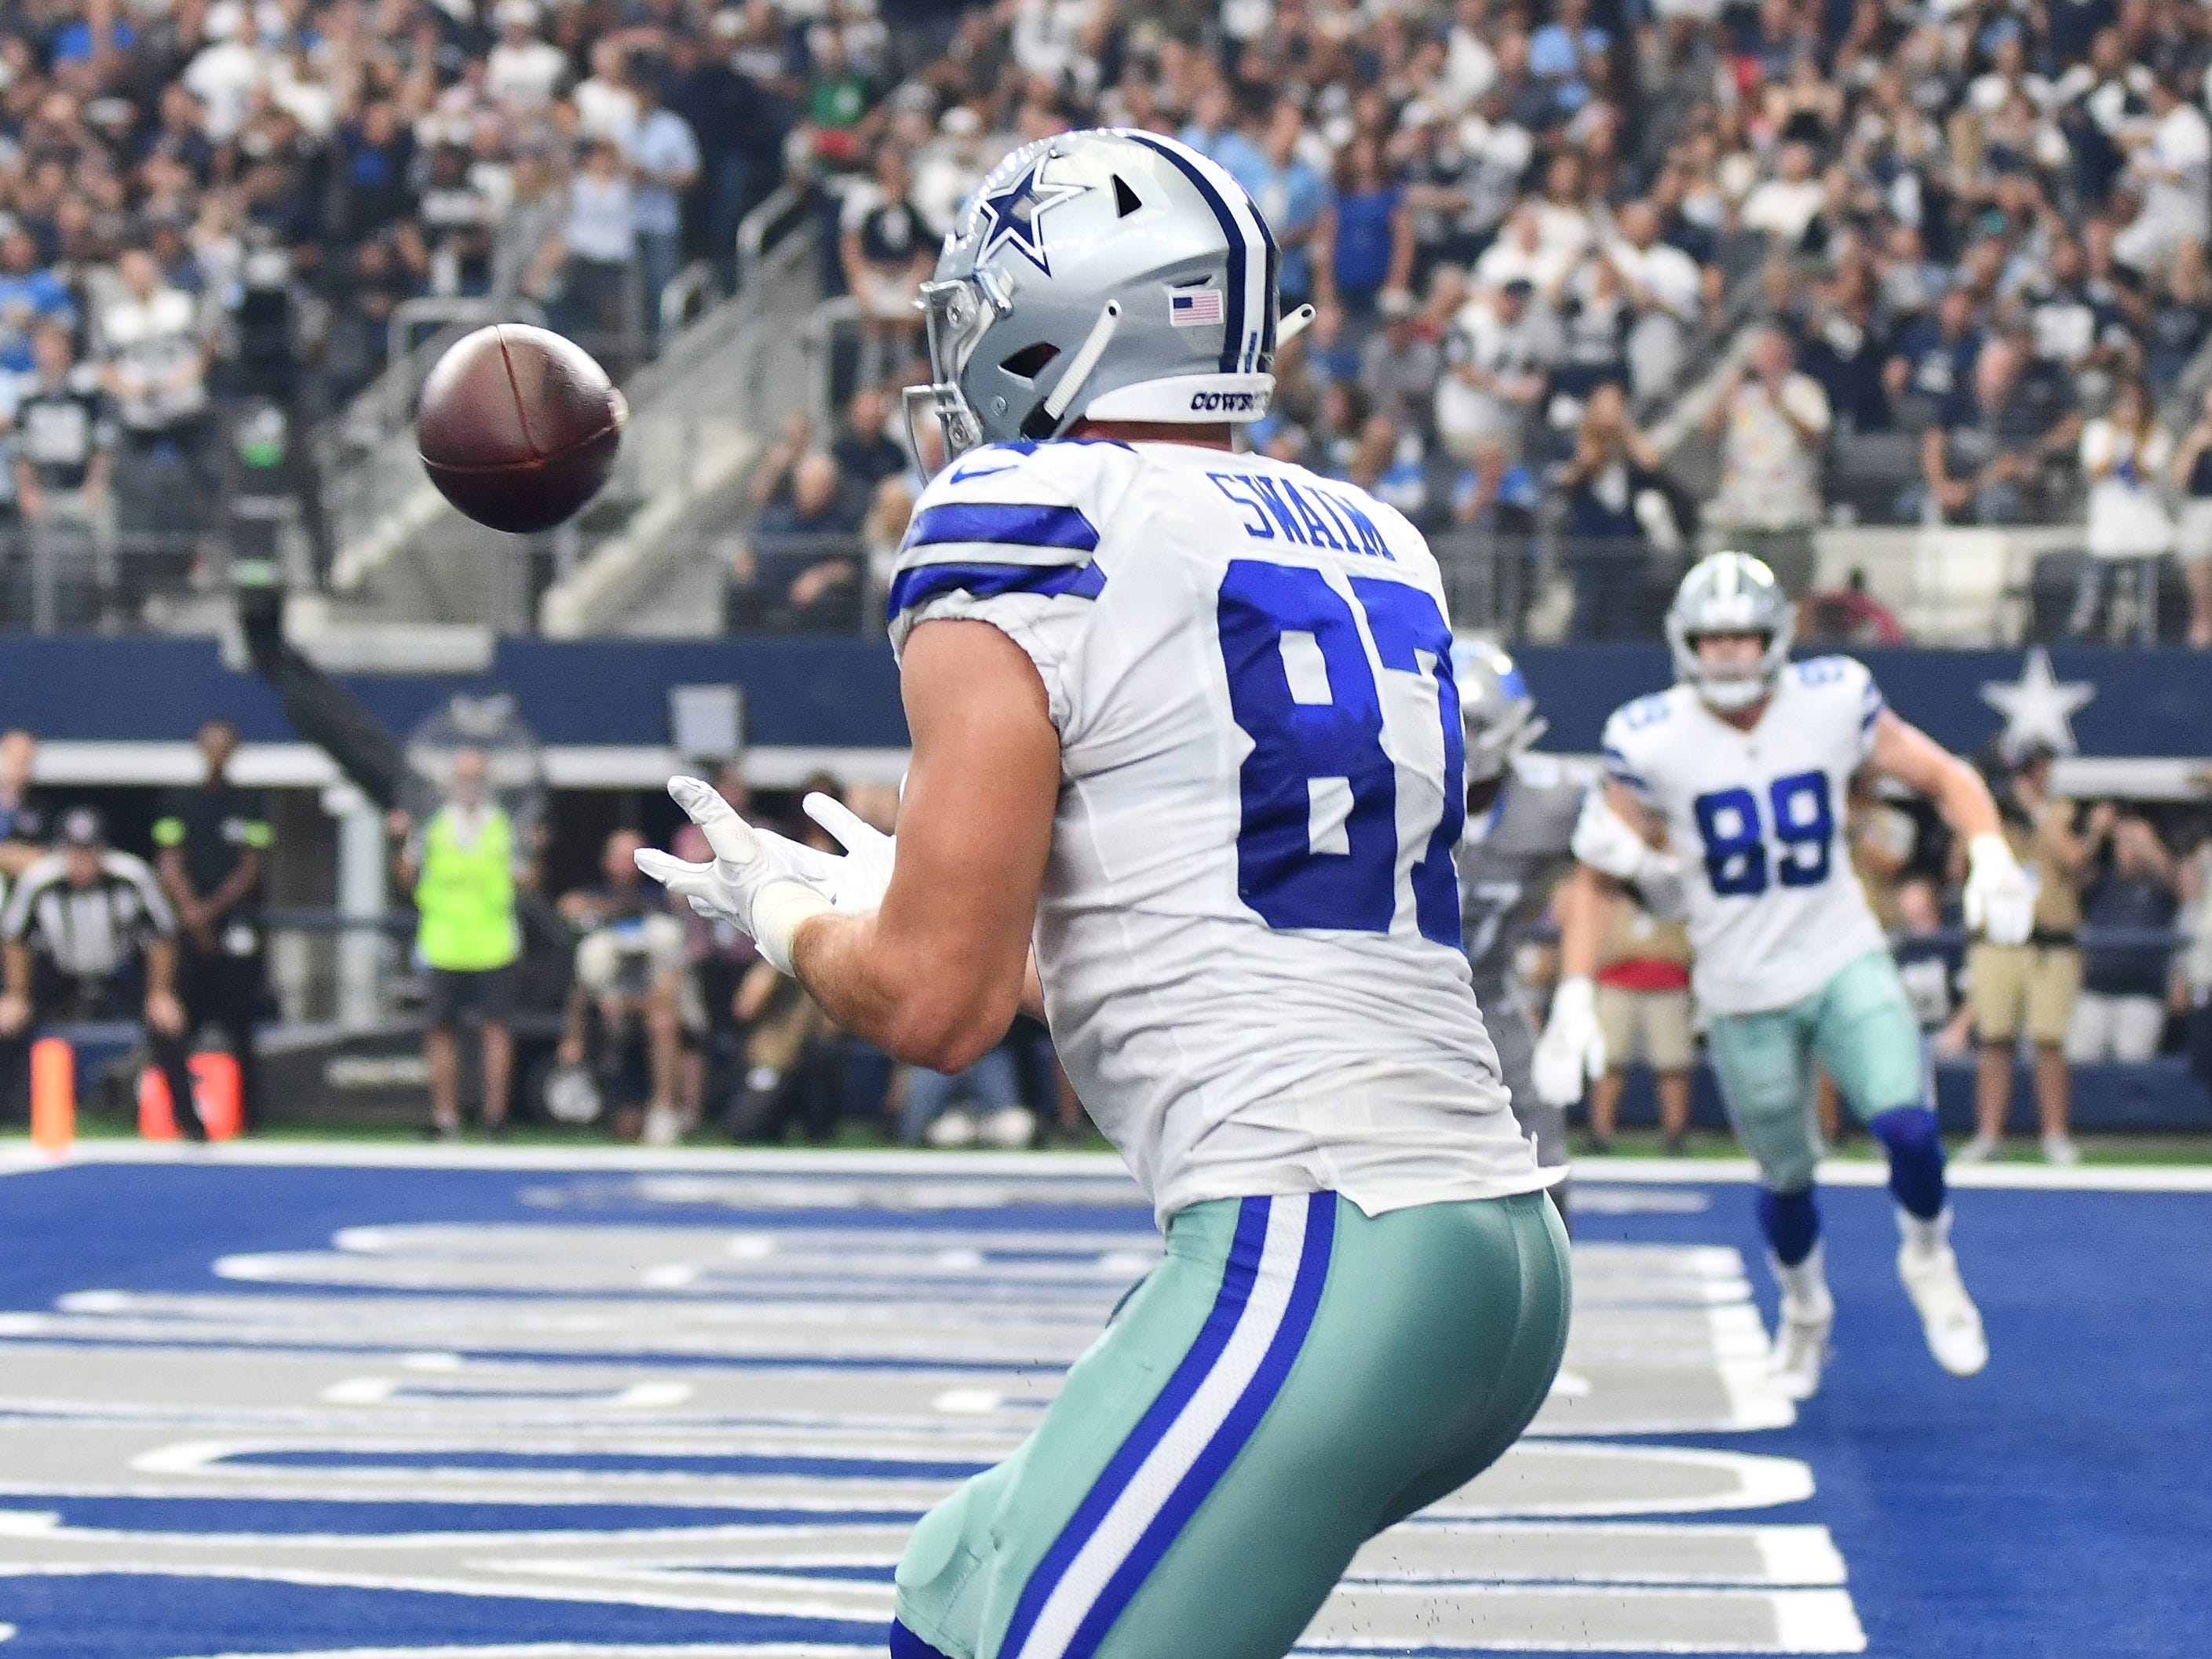 Cowboys tight end Geoff Swaim is all alone for an easy touchdown in the end zone in the third quarter.